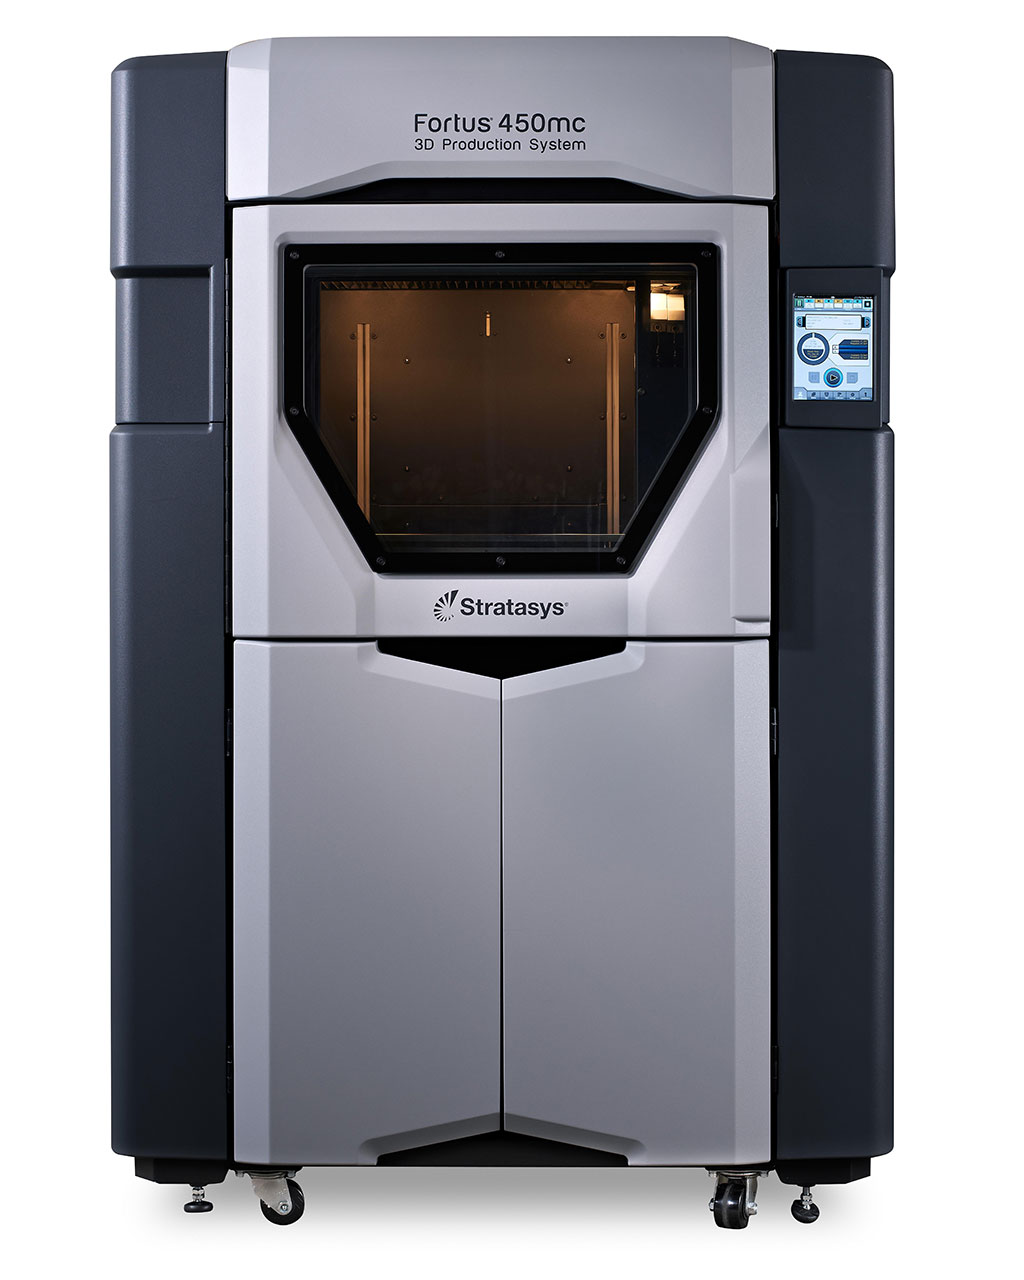 Stratasys Fortus 450mc ULTEM printer